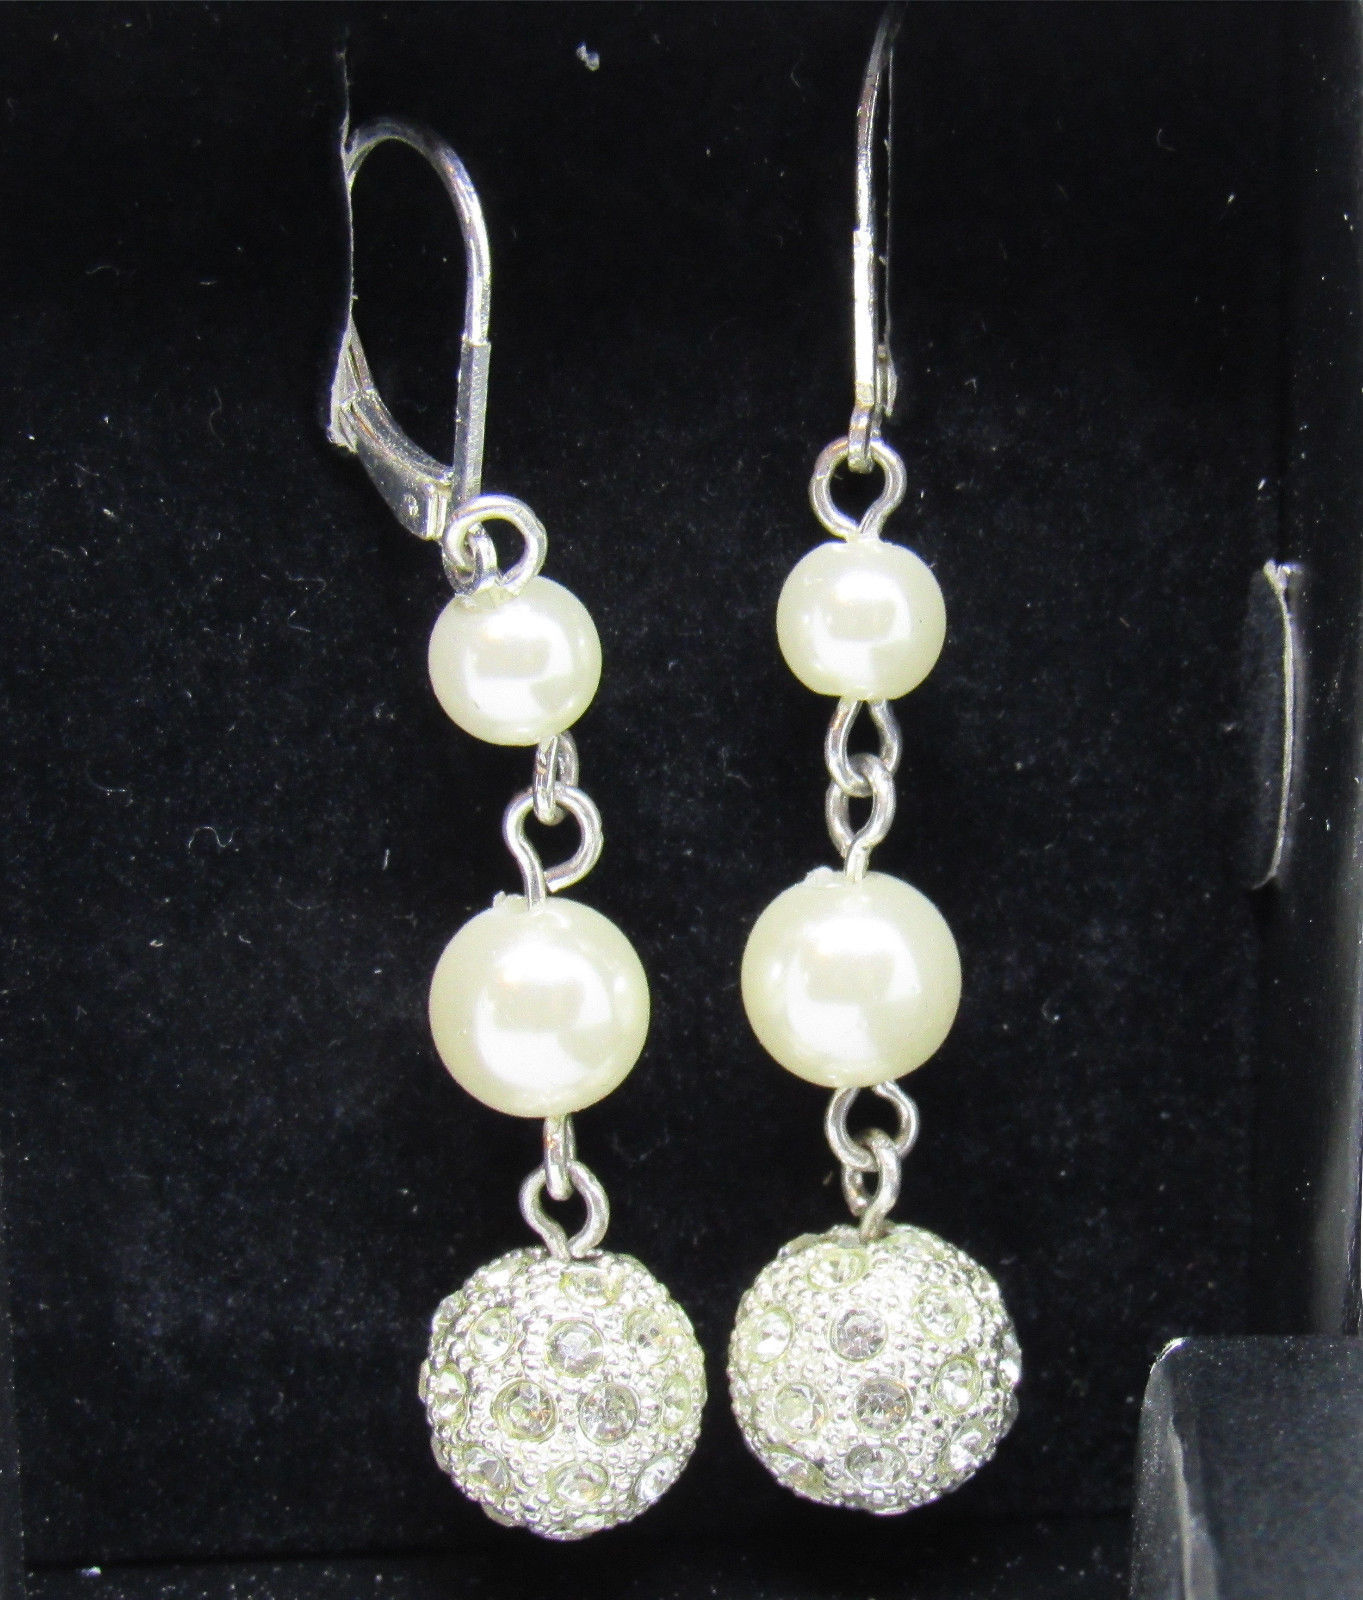 Avon 2011 President's Club Pearlesque Earrings Dangle Leverback image 2